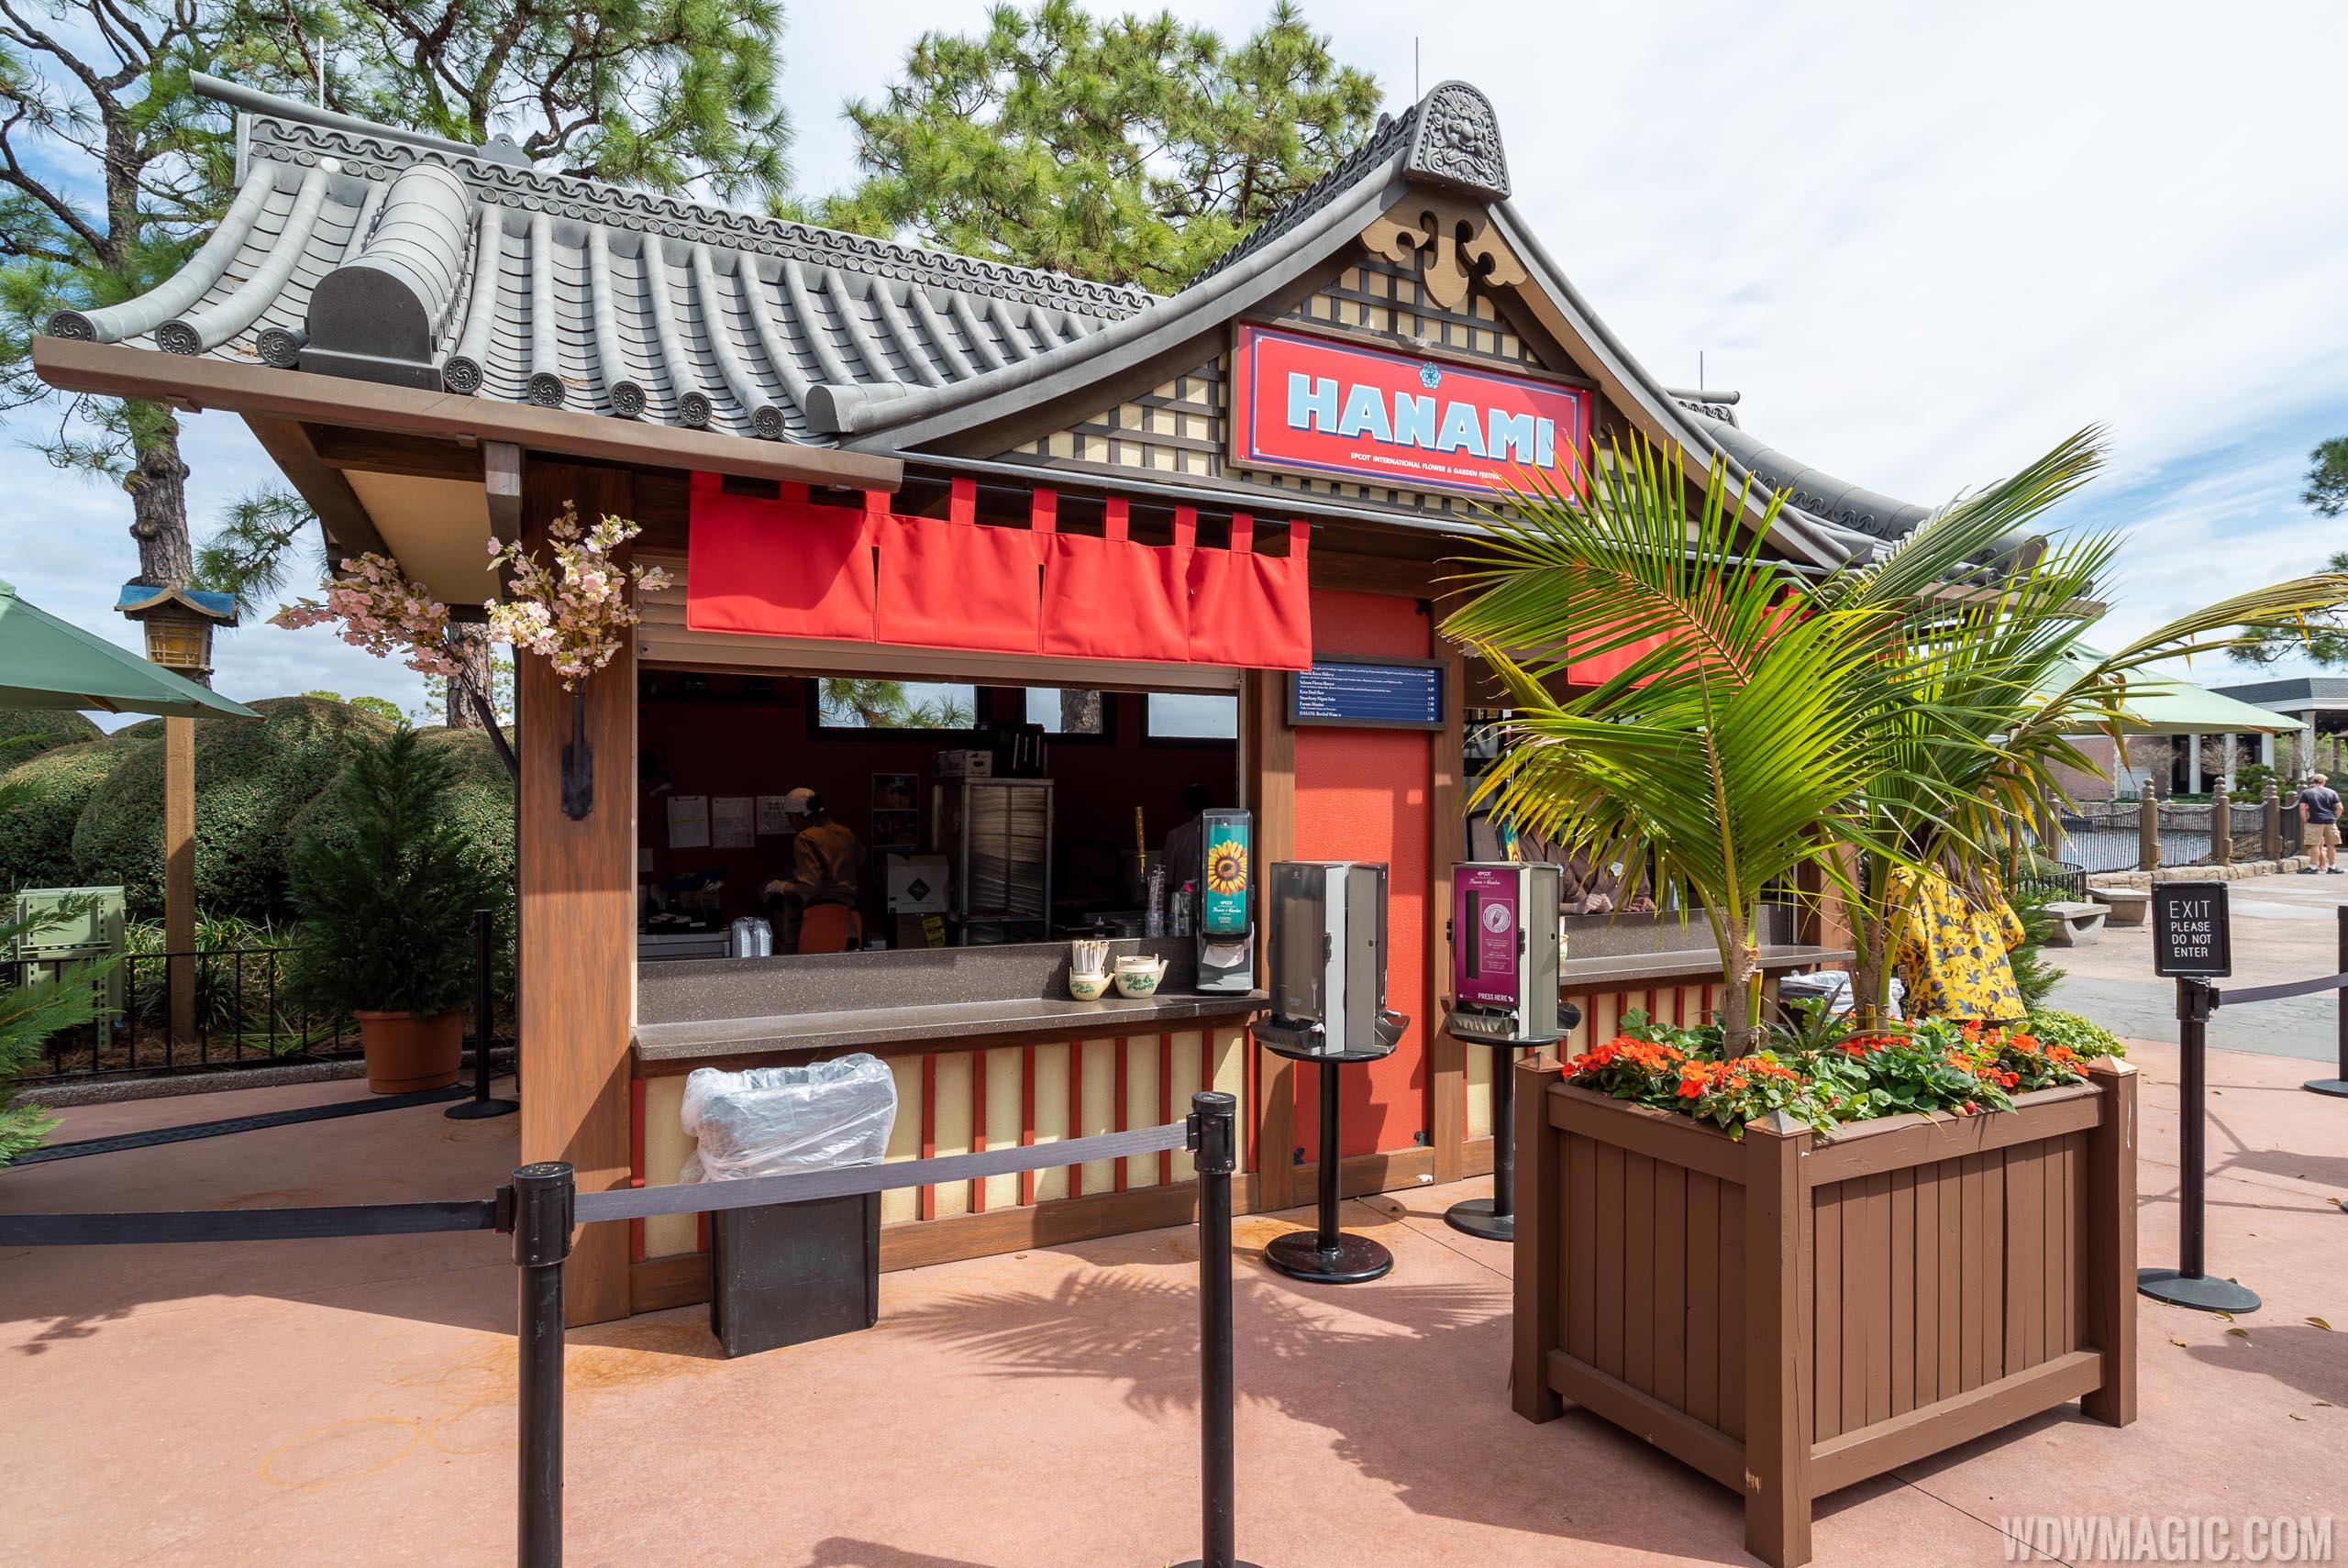 2020 Epcot Flower and Garden Festival Outdoor Kitchen kiosks - Hanami